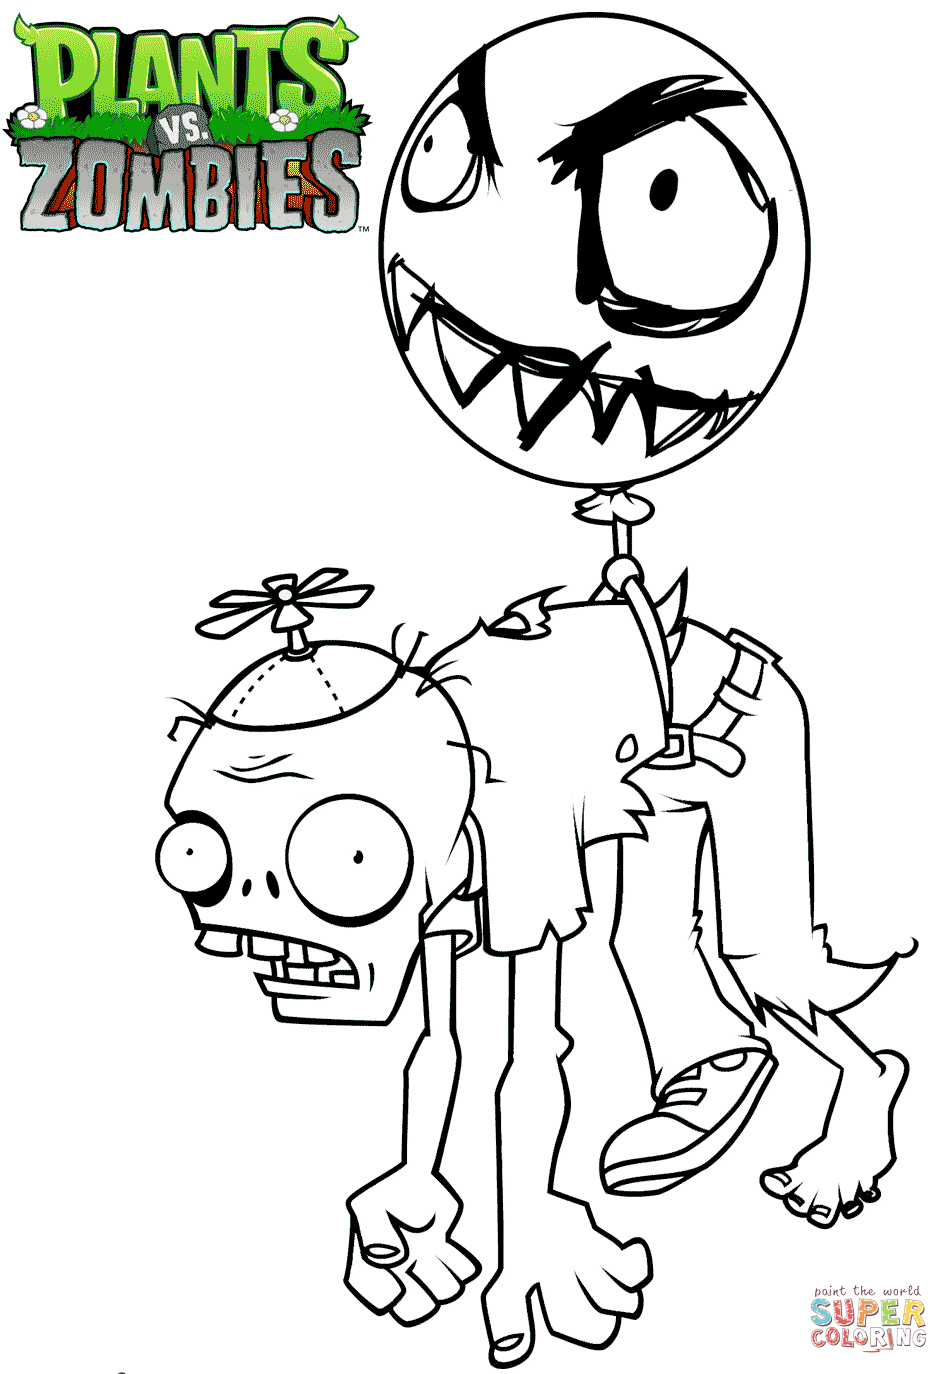 Zombie Santa Coloring Page With Plants Vs Zombies Balloon Free Printable